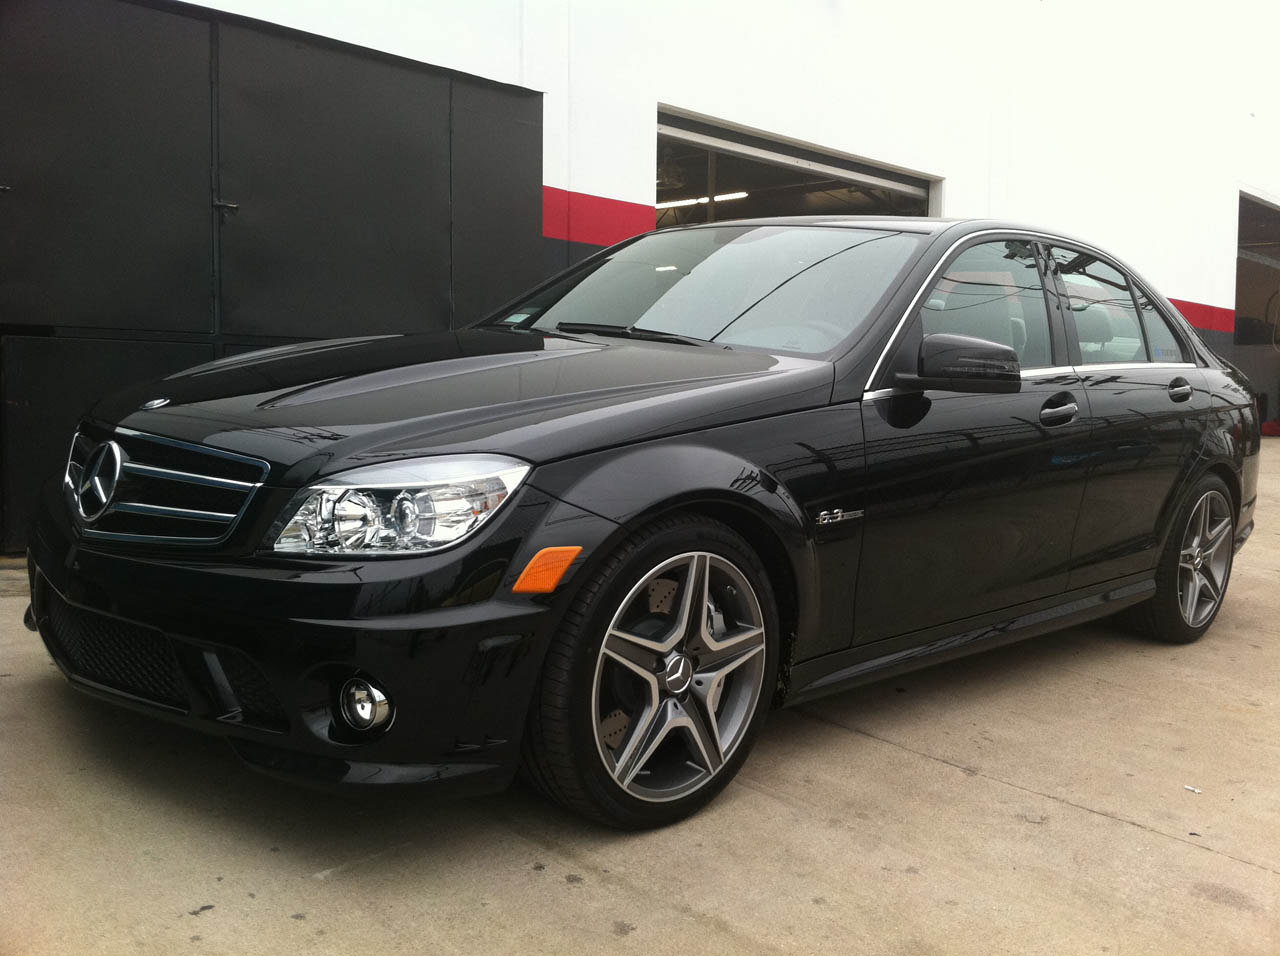 2011 Mercedes-Benz C63 AMG OE Tuning, Gintani Stg1 Exhaust, Street Tire